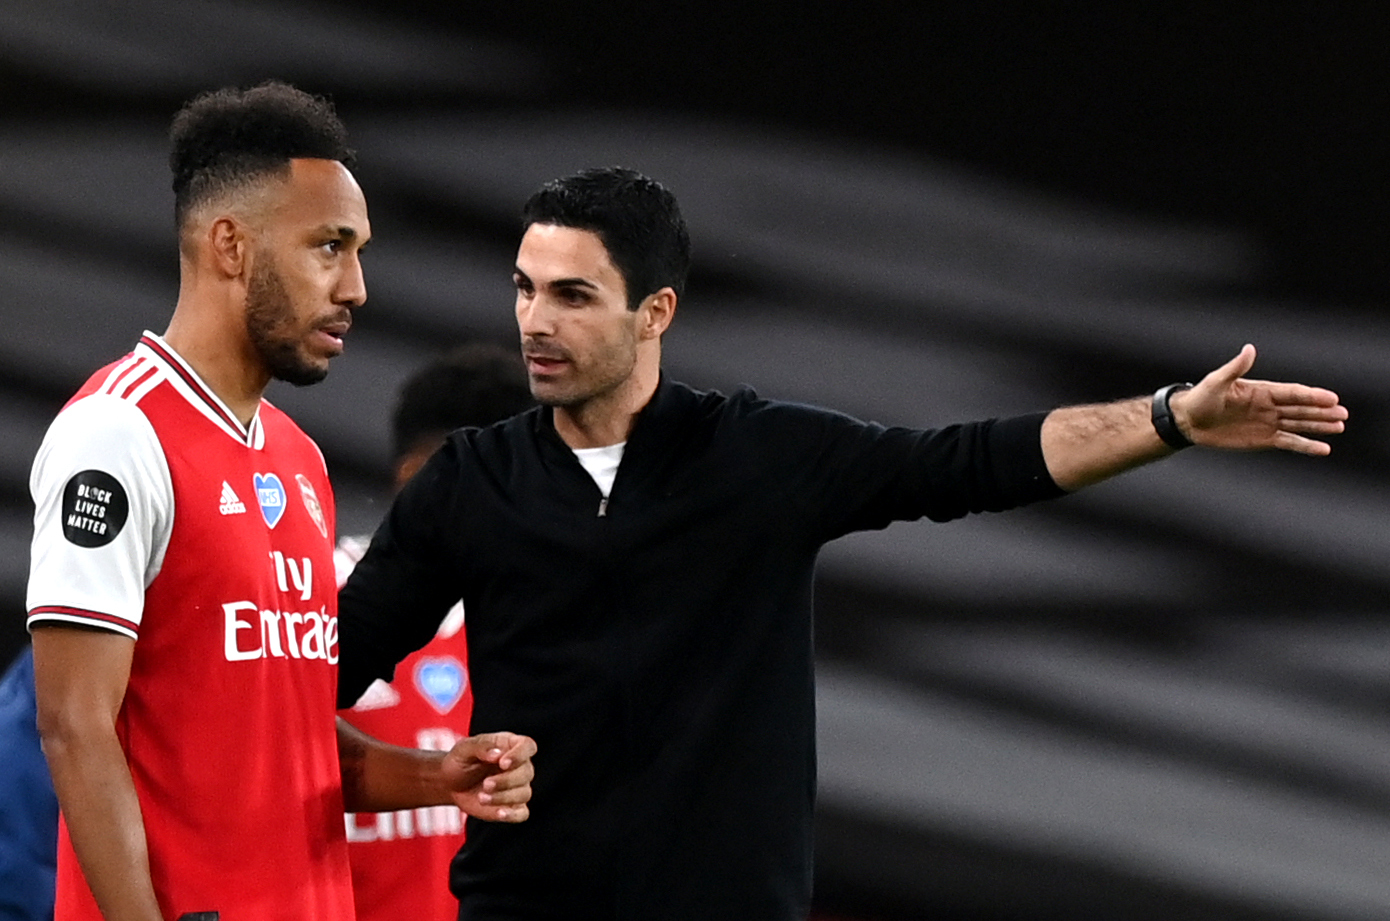 Arsenal boss Mikel Arteta showed conviction with Aubameyang said Delaney.